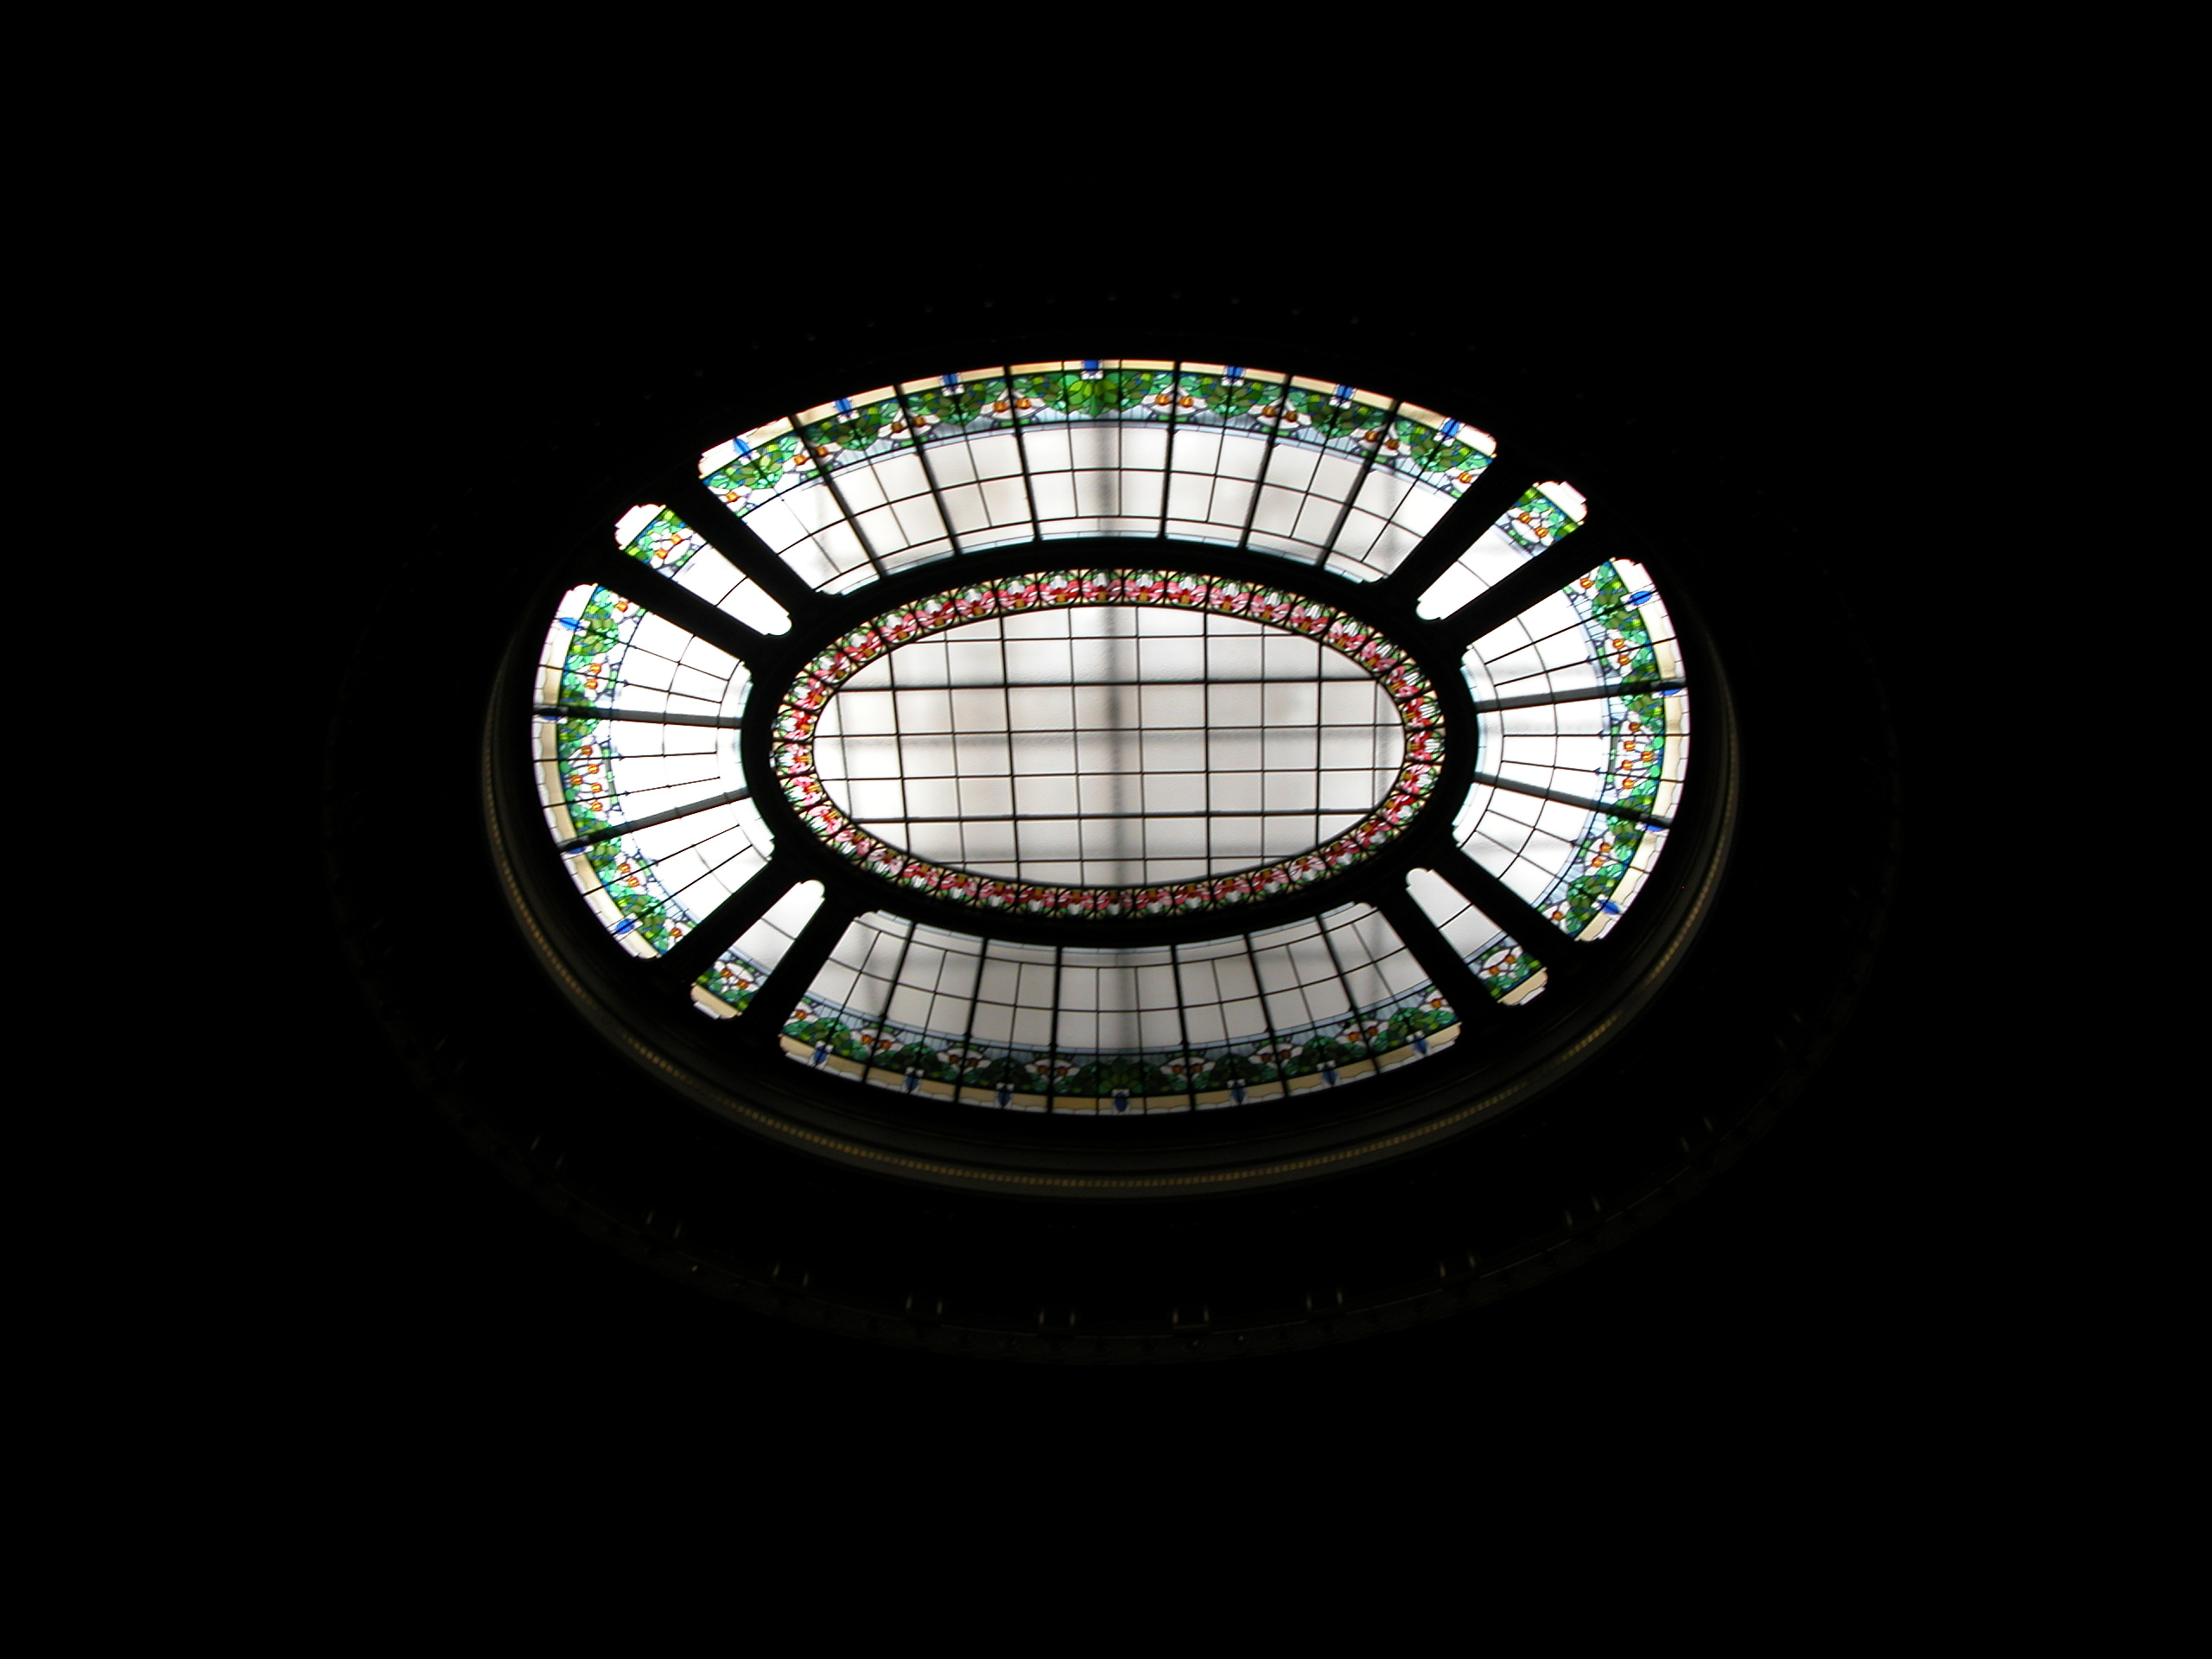 glass stained round oval black decorated transparant ceiling high up